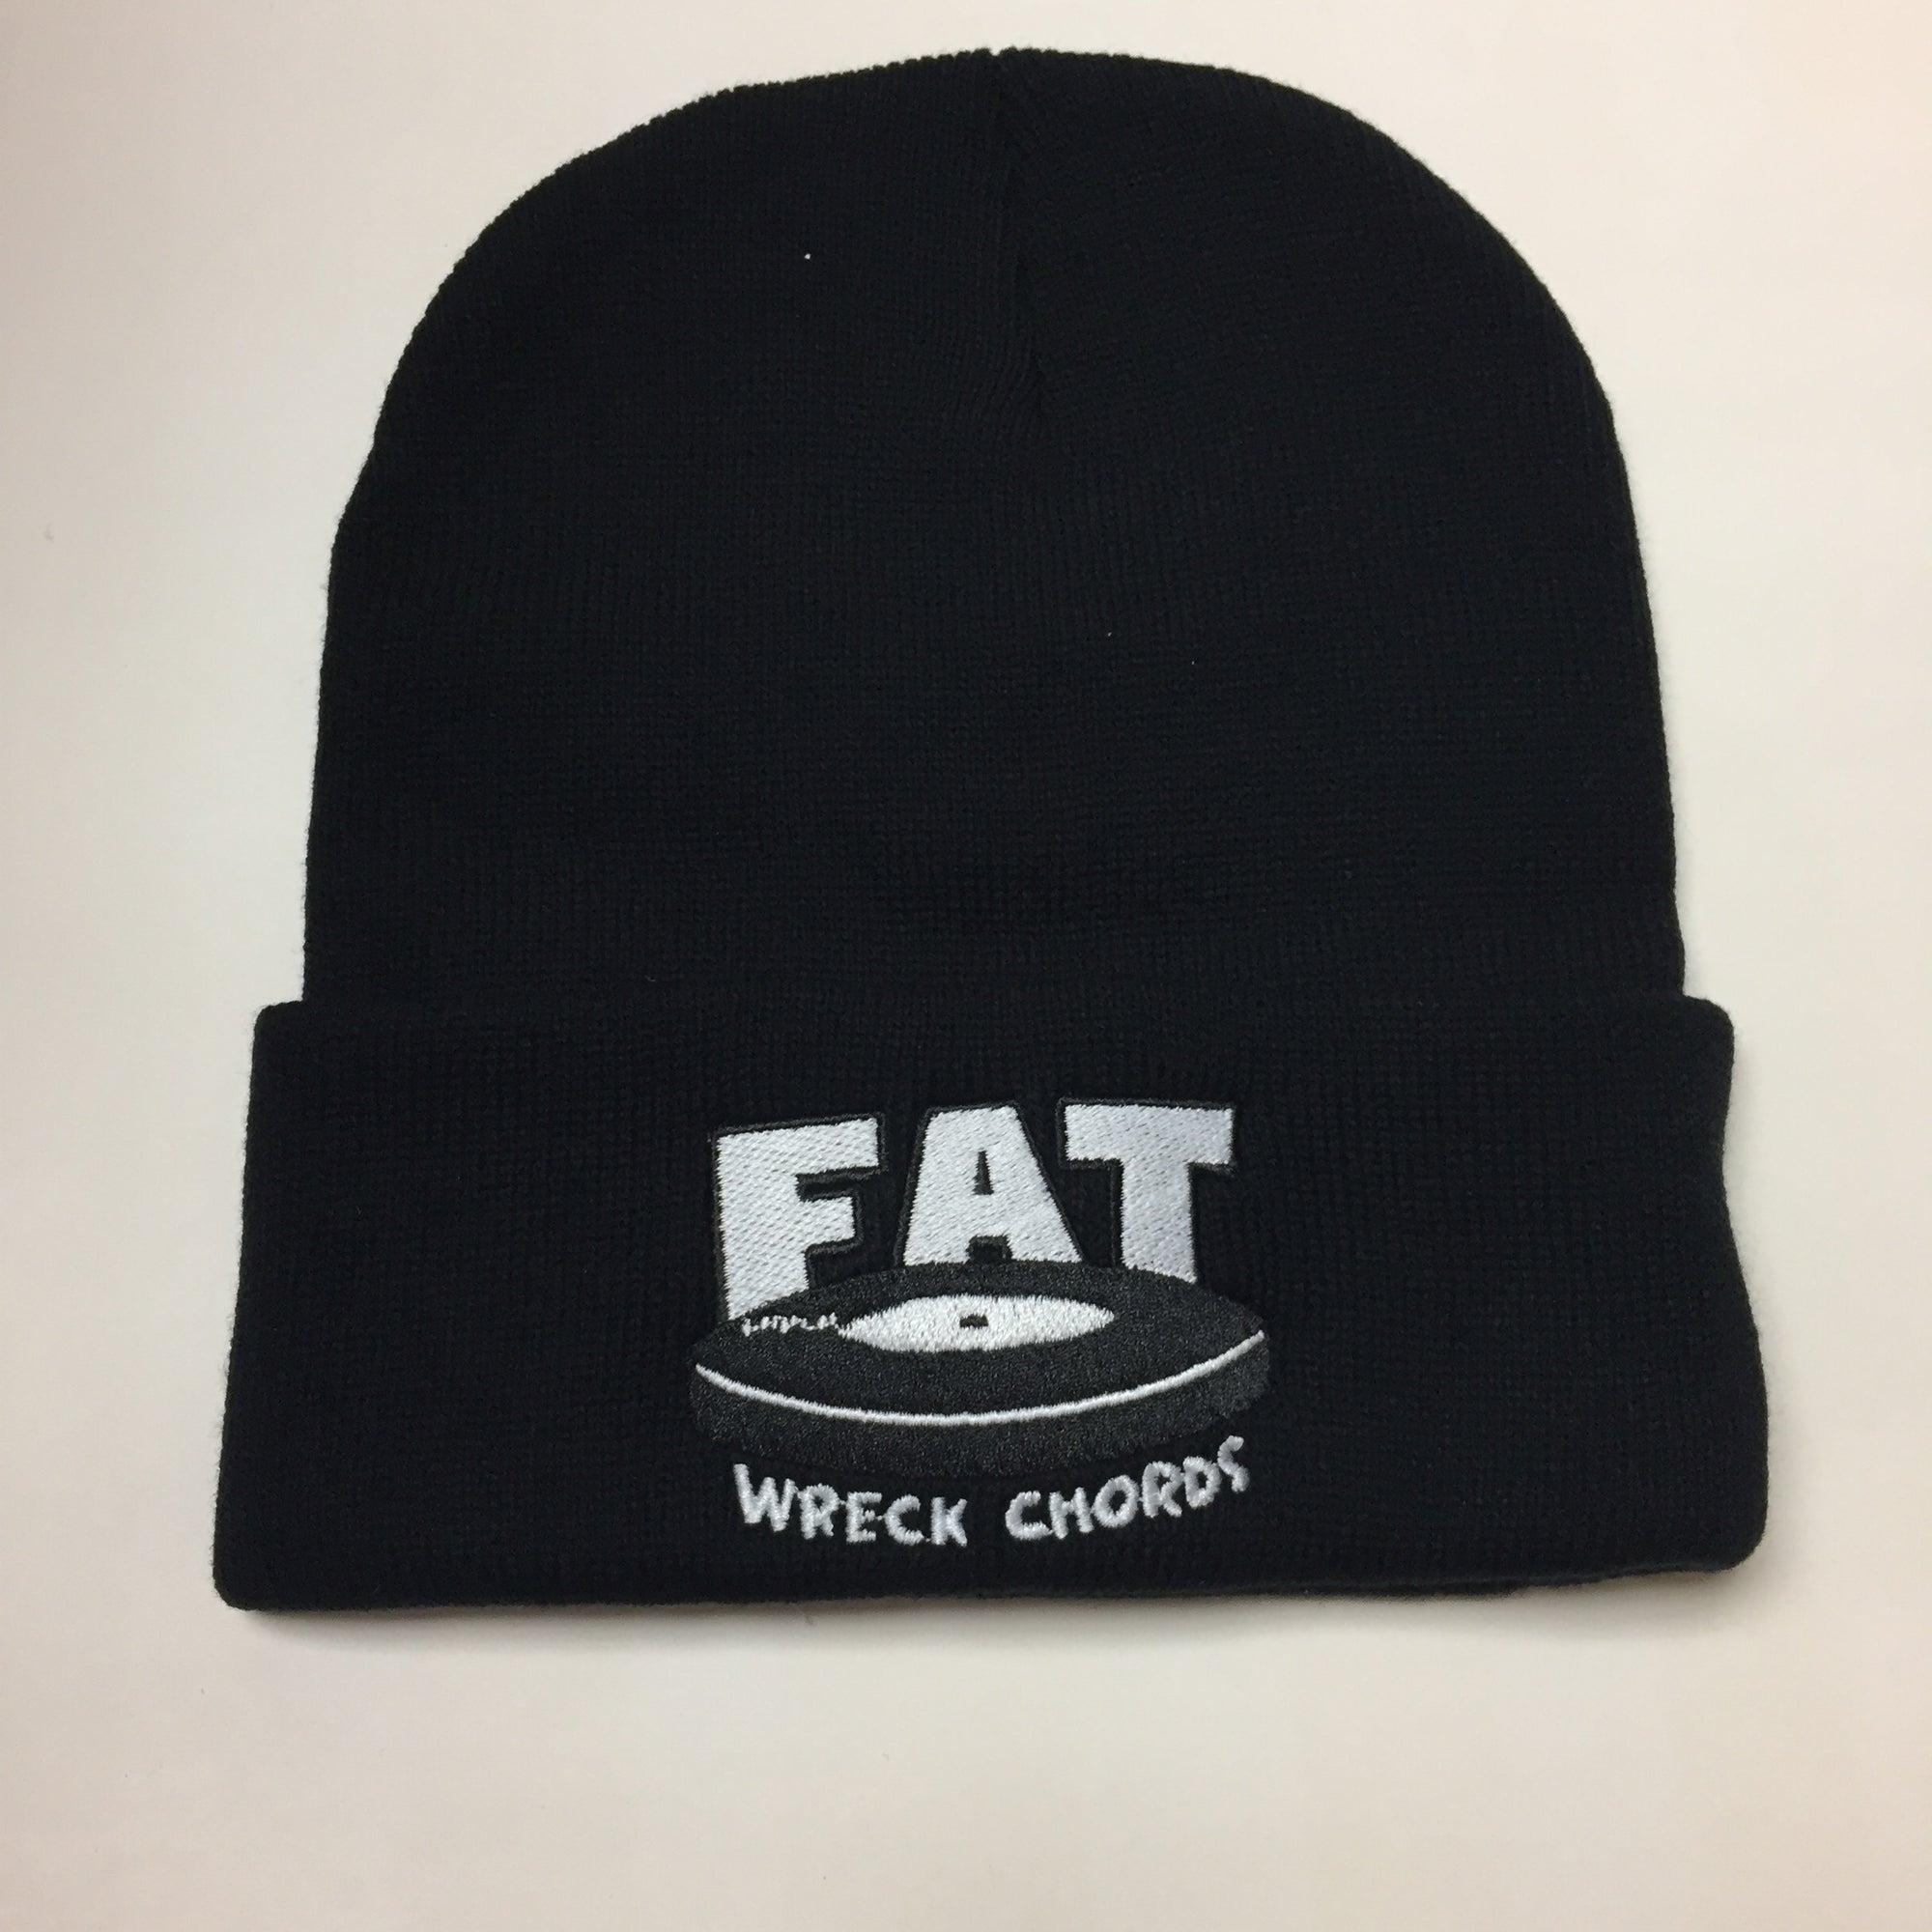 Fat Wreck Chords BEANIE